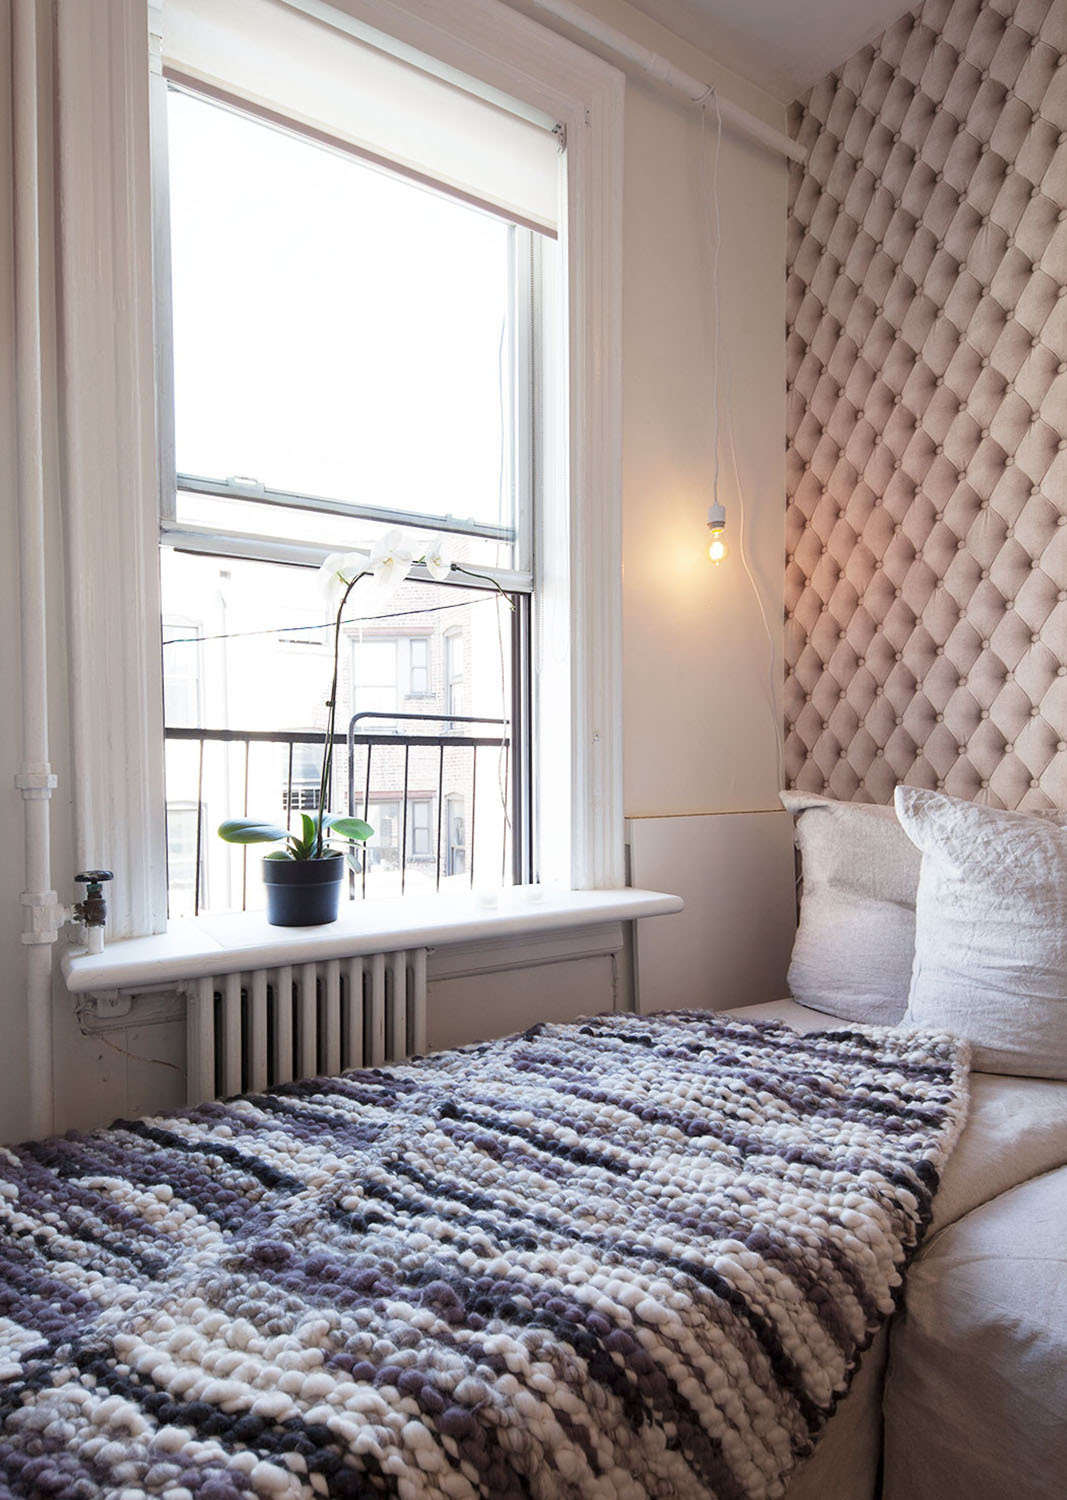 Lampert's hand-knit throw provides warmth by the window.